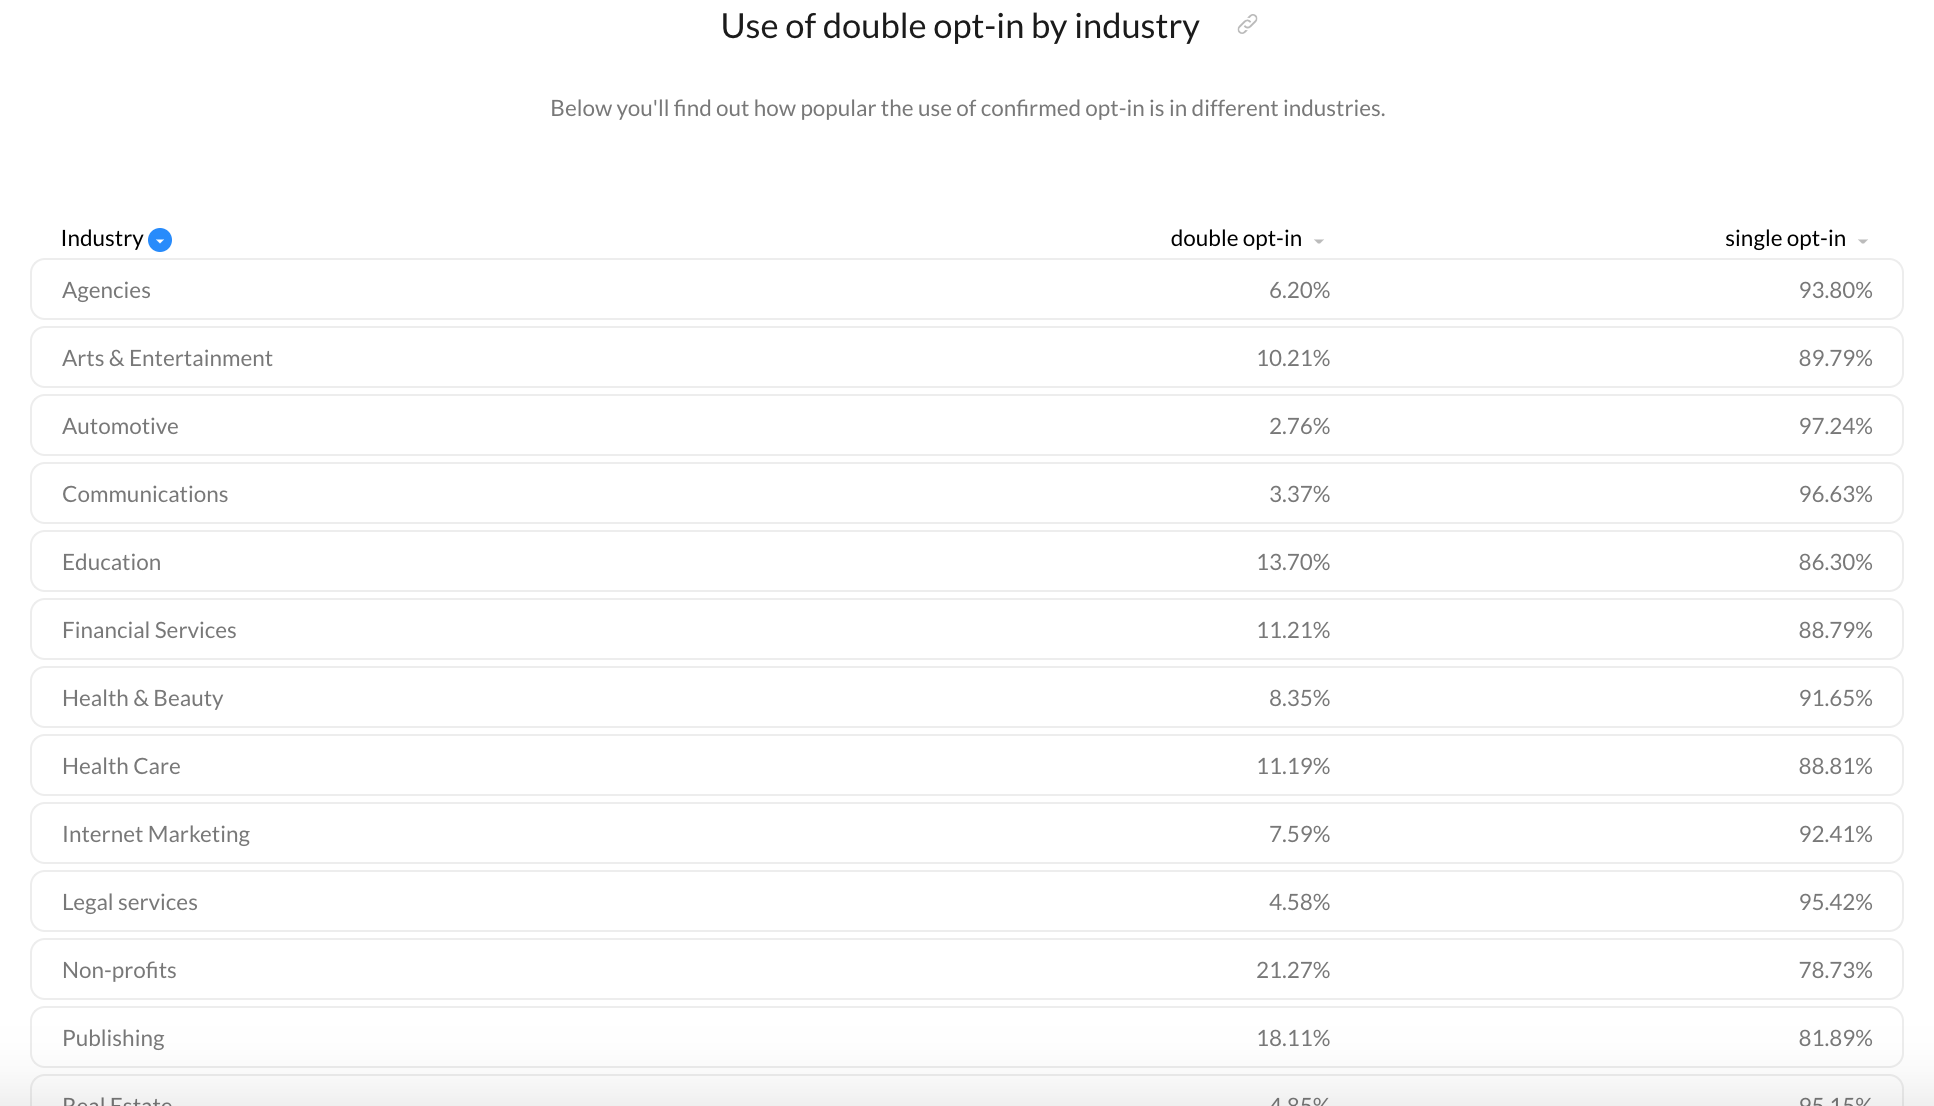 use of double opt-in by industry.